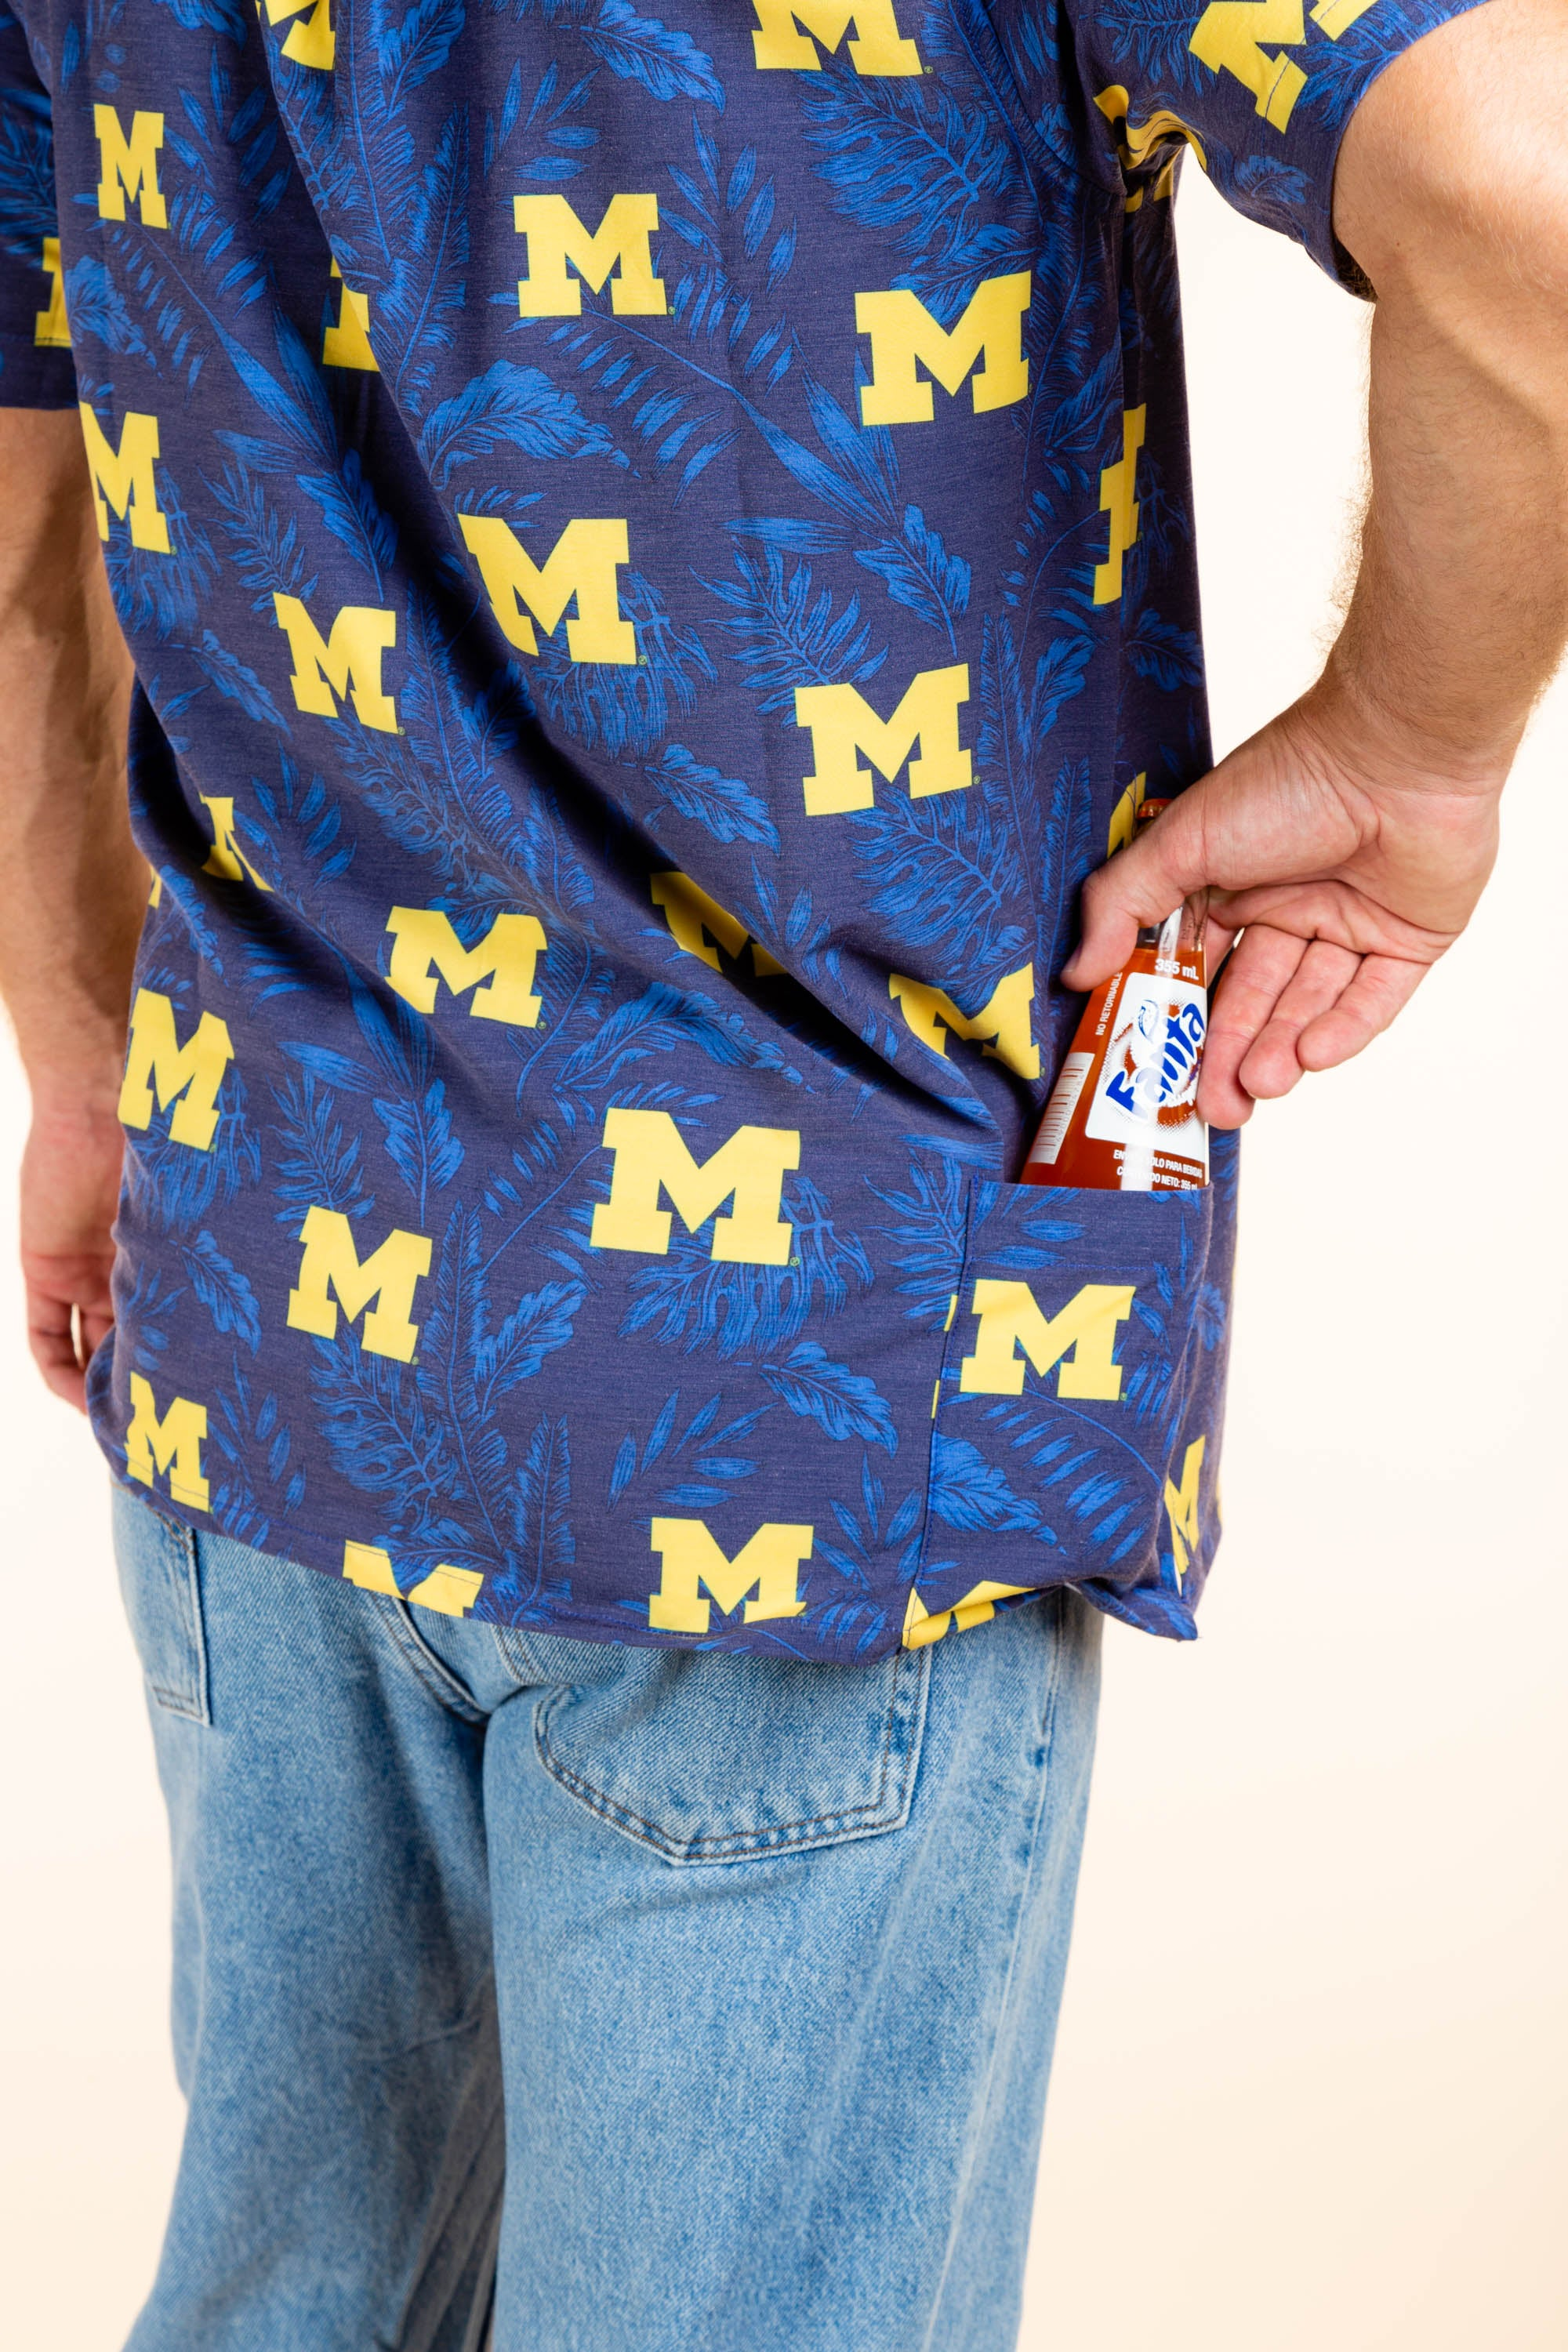 University of Michigan Tailgating shirt with extra pocket